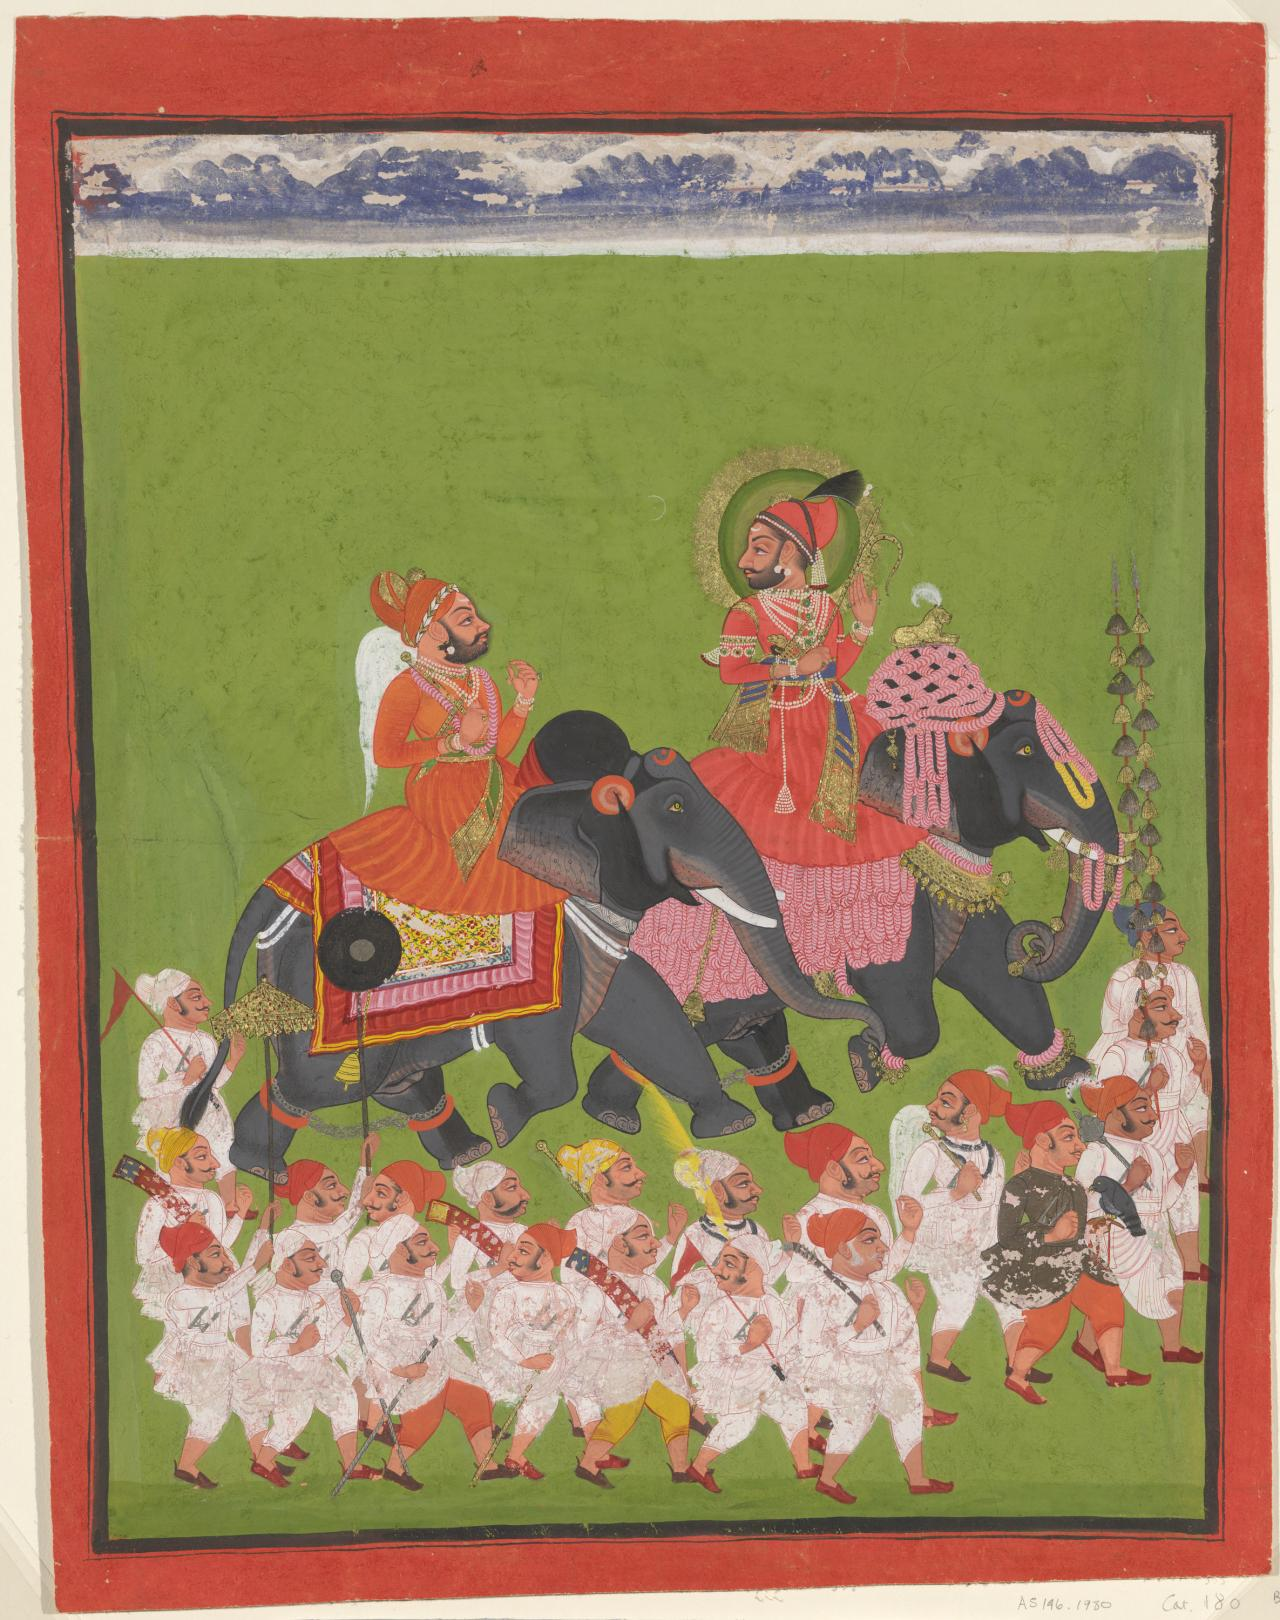 Maharana Ari Singh II and Rapaji riding elephants